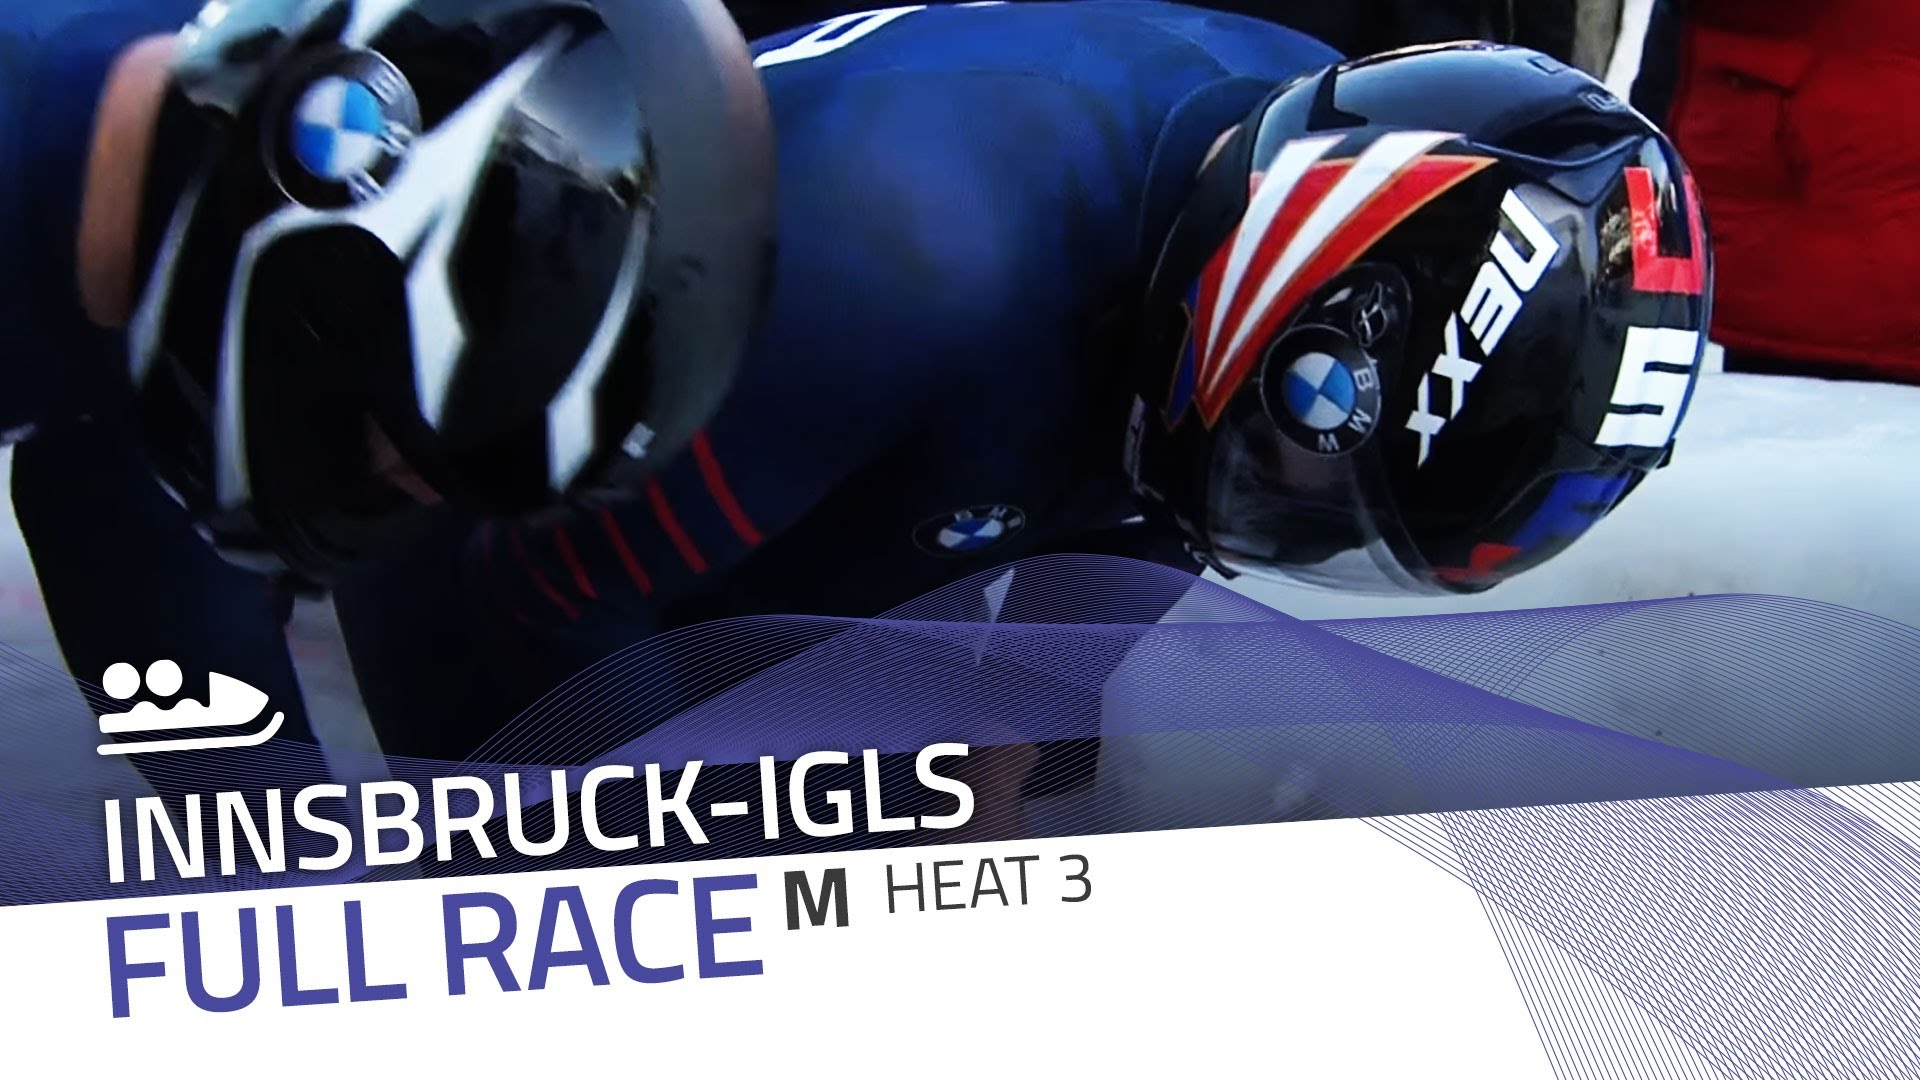 Innsbruck-igls | bmw ibsf world championships 2016 - 2-man bobsleigh heat 3 | ibsf official